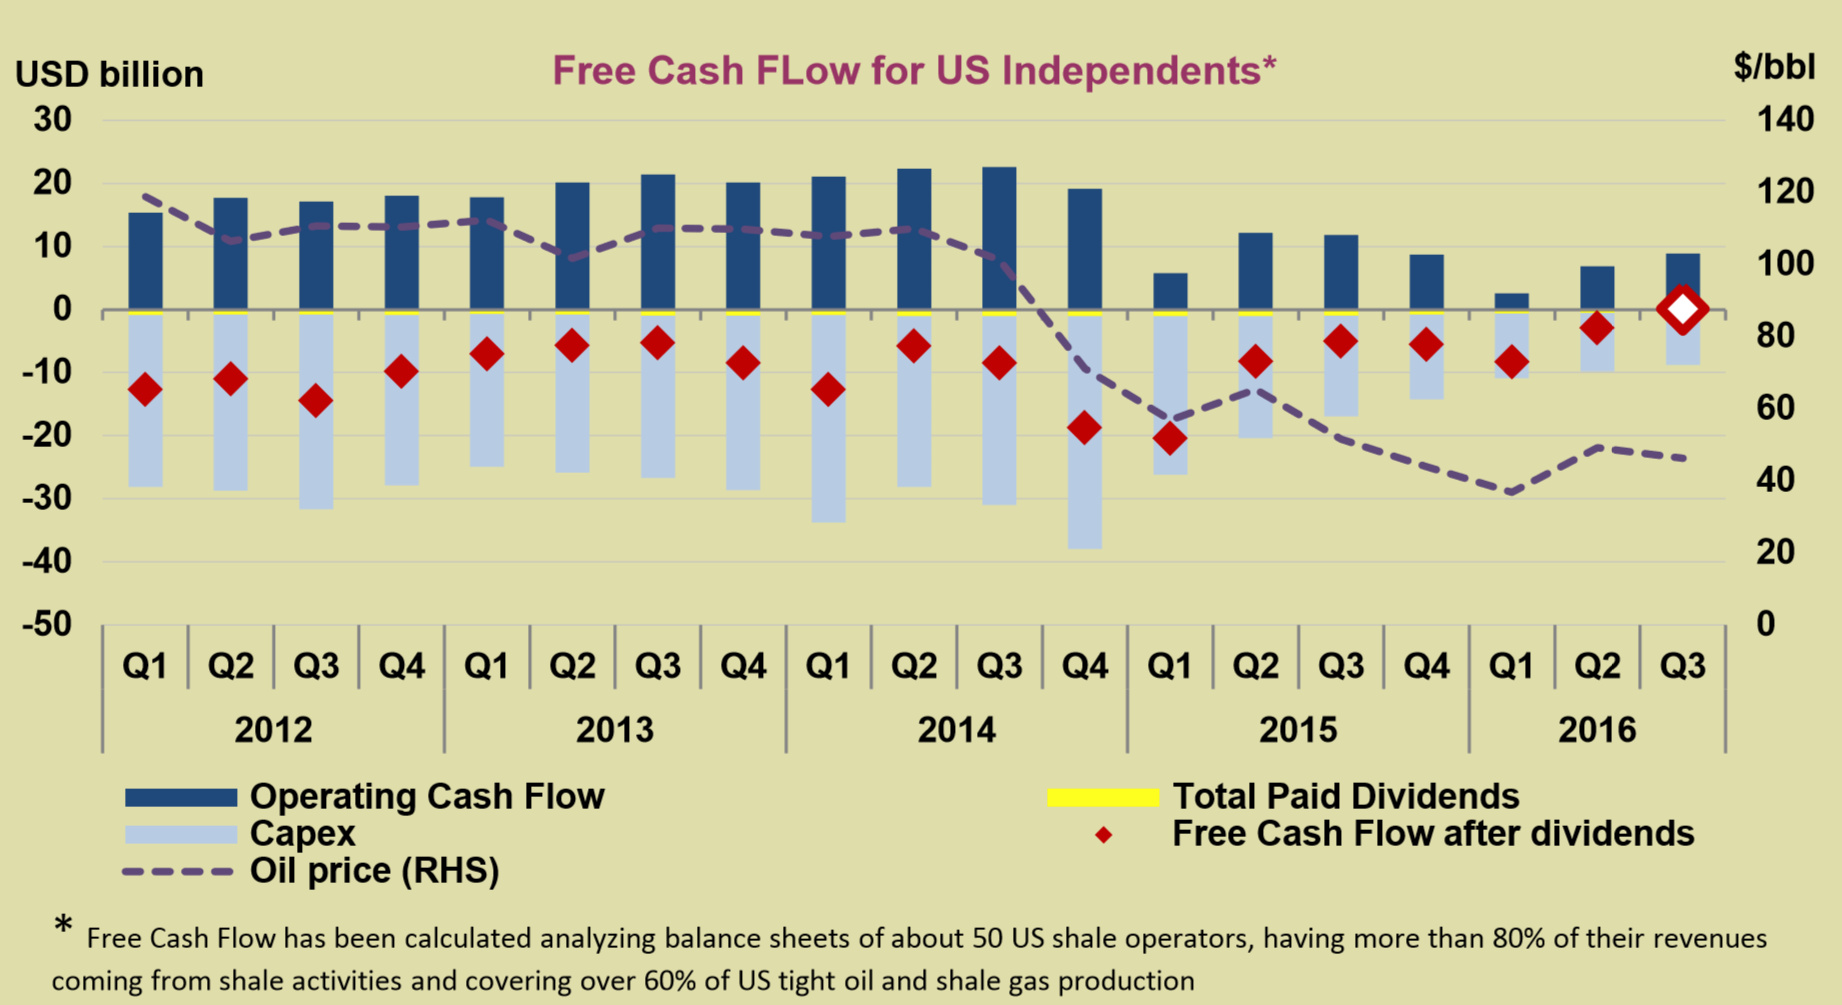 Shale Rebound - US Oil Free Cash Flow